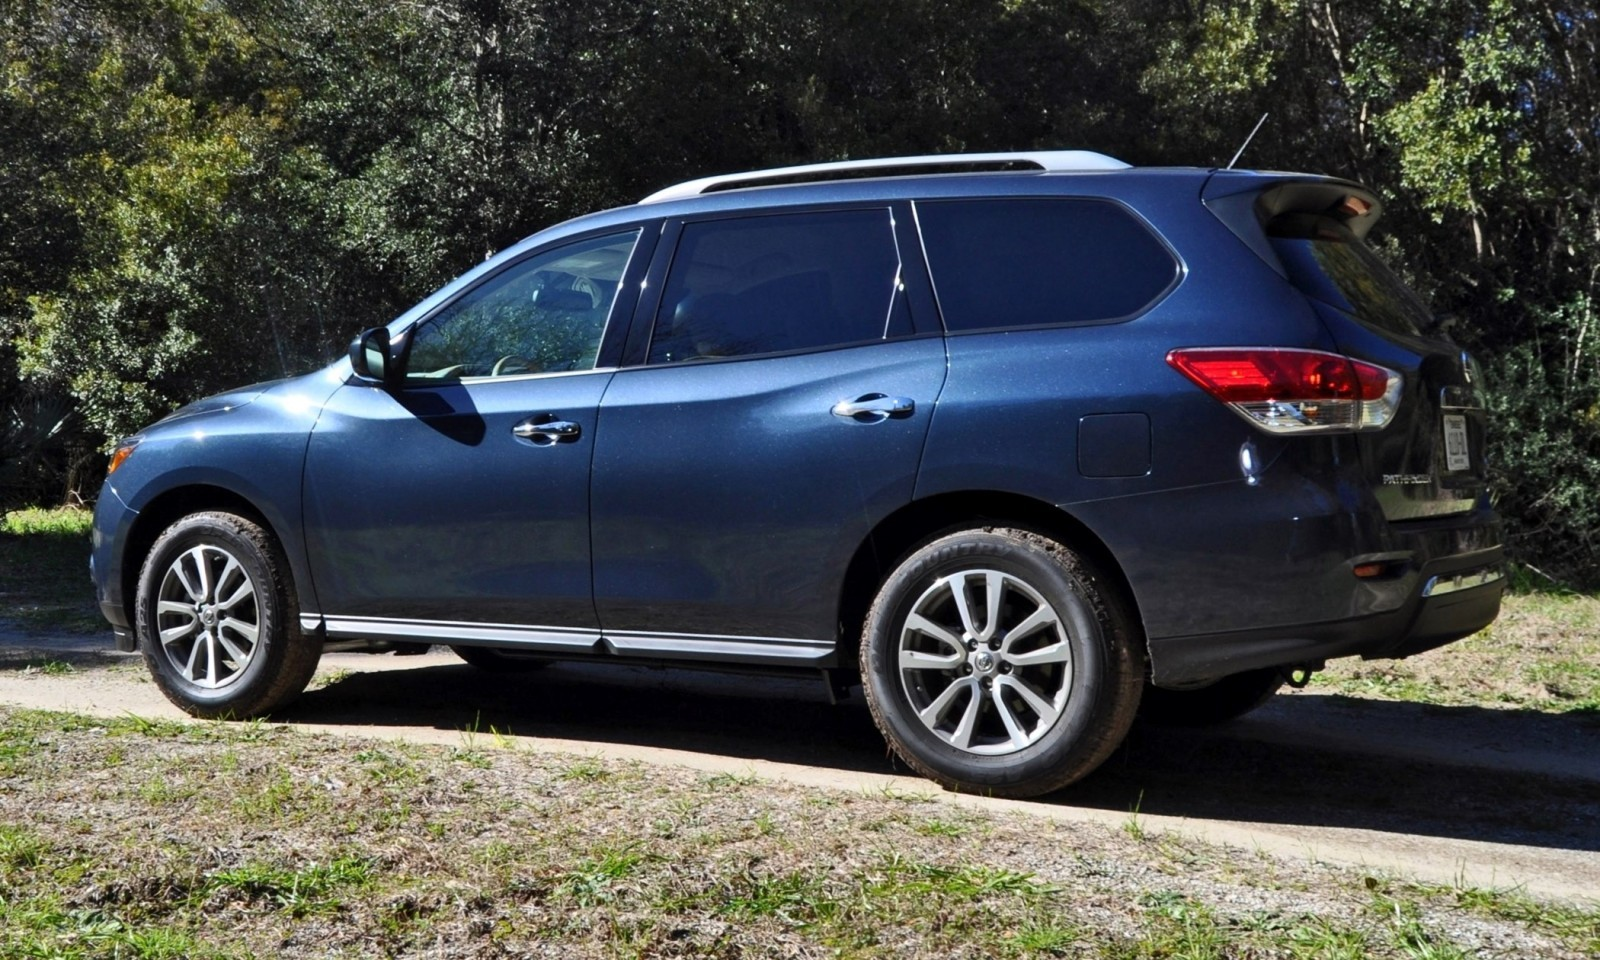 Road Test Review - 2015 Nissan Pathfinder SV 4WD 30